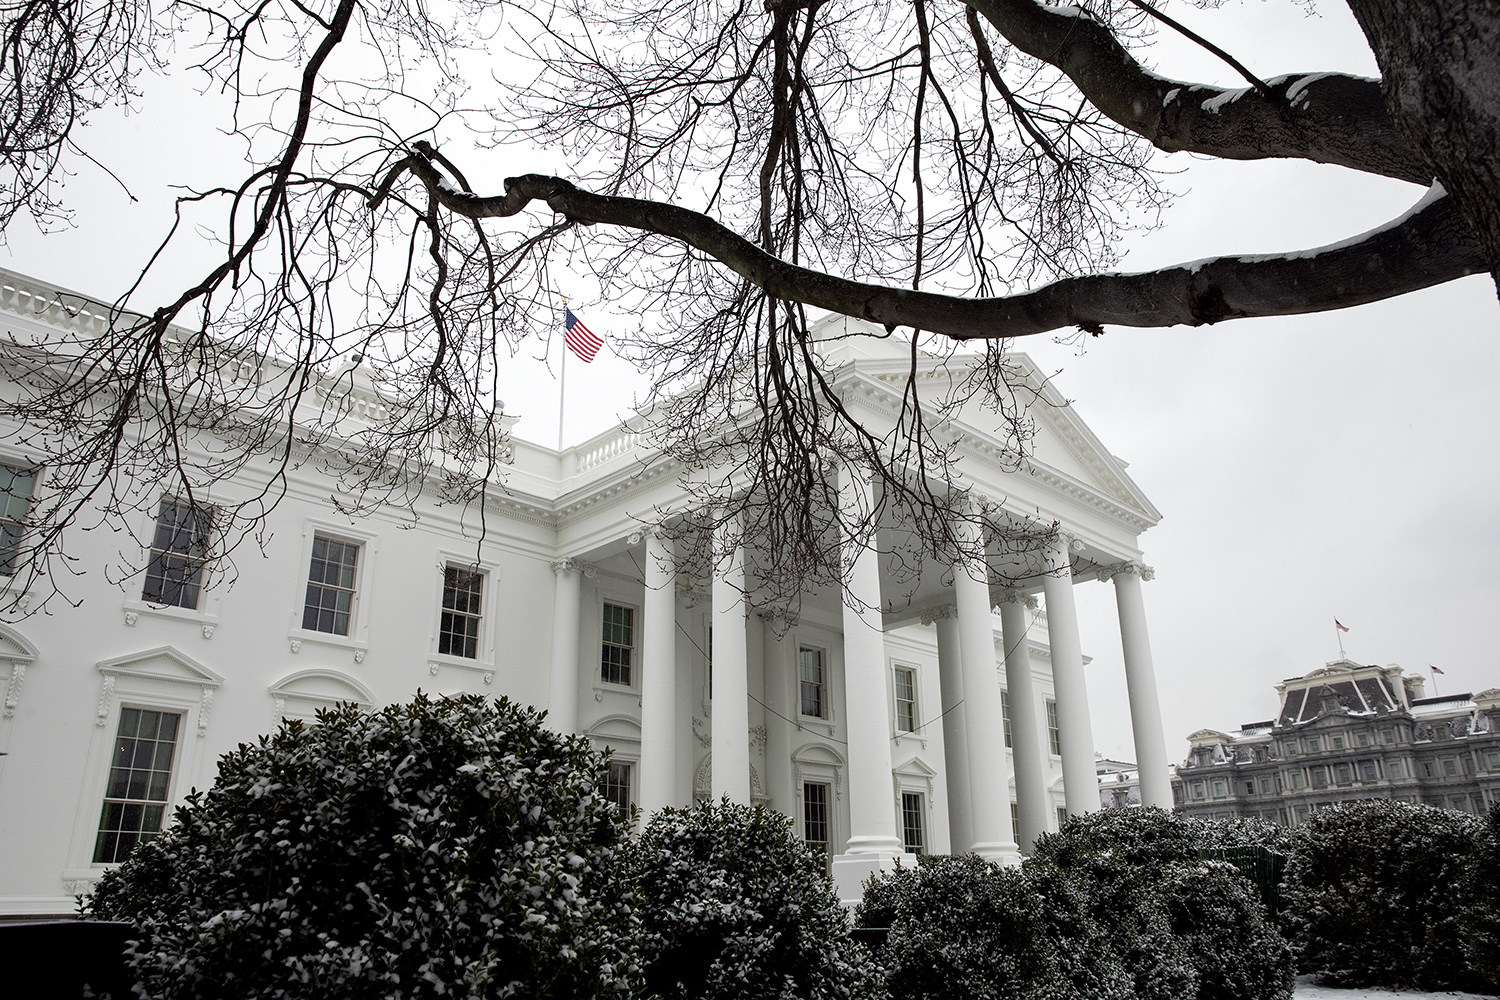 White House in winter, Feb. 1, 2019. (Official White House Photo by Joyce N. Bogosian via Flickr)